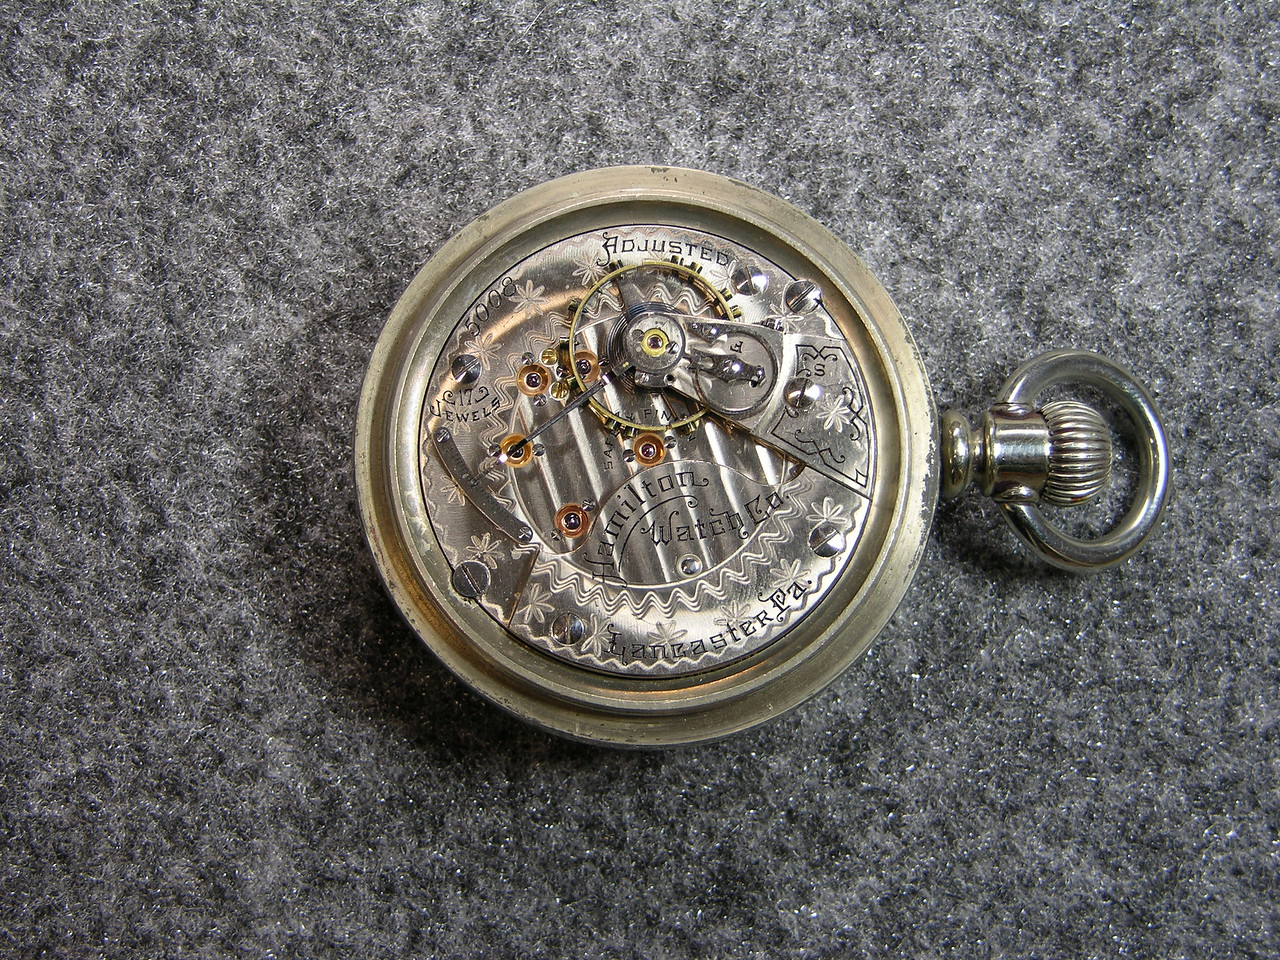 934 movement, 17 jewels                           manufactured 1900-1909                           total production 3,310